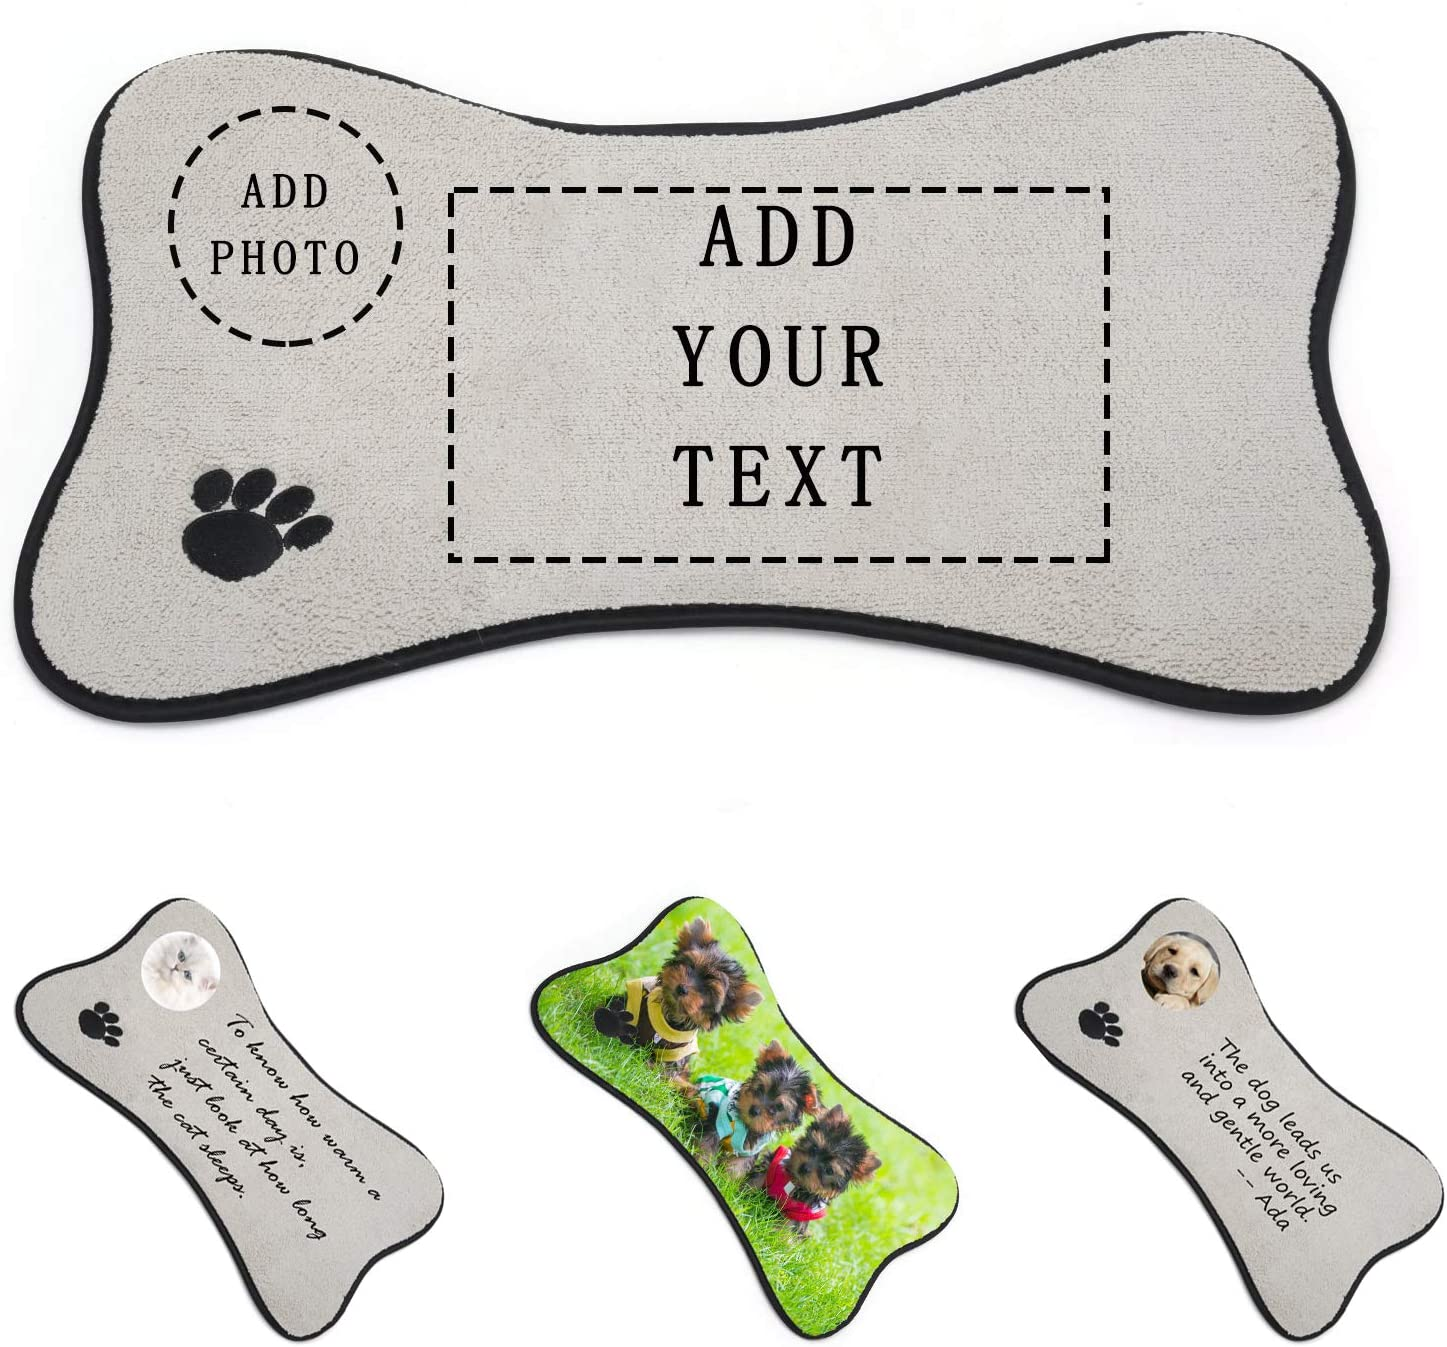 INISCO Custom Dog/Cat Feeding Mats, Personalized Photo/Text Pet Food and Water Mat, Pet Feeding Mat for Floor with Non Slip Backing